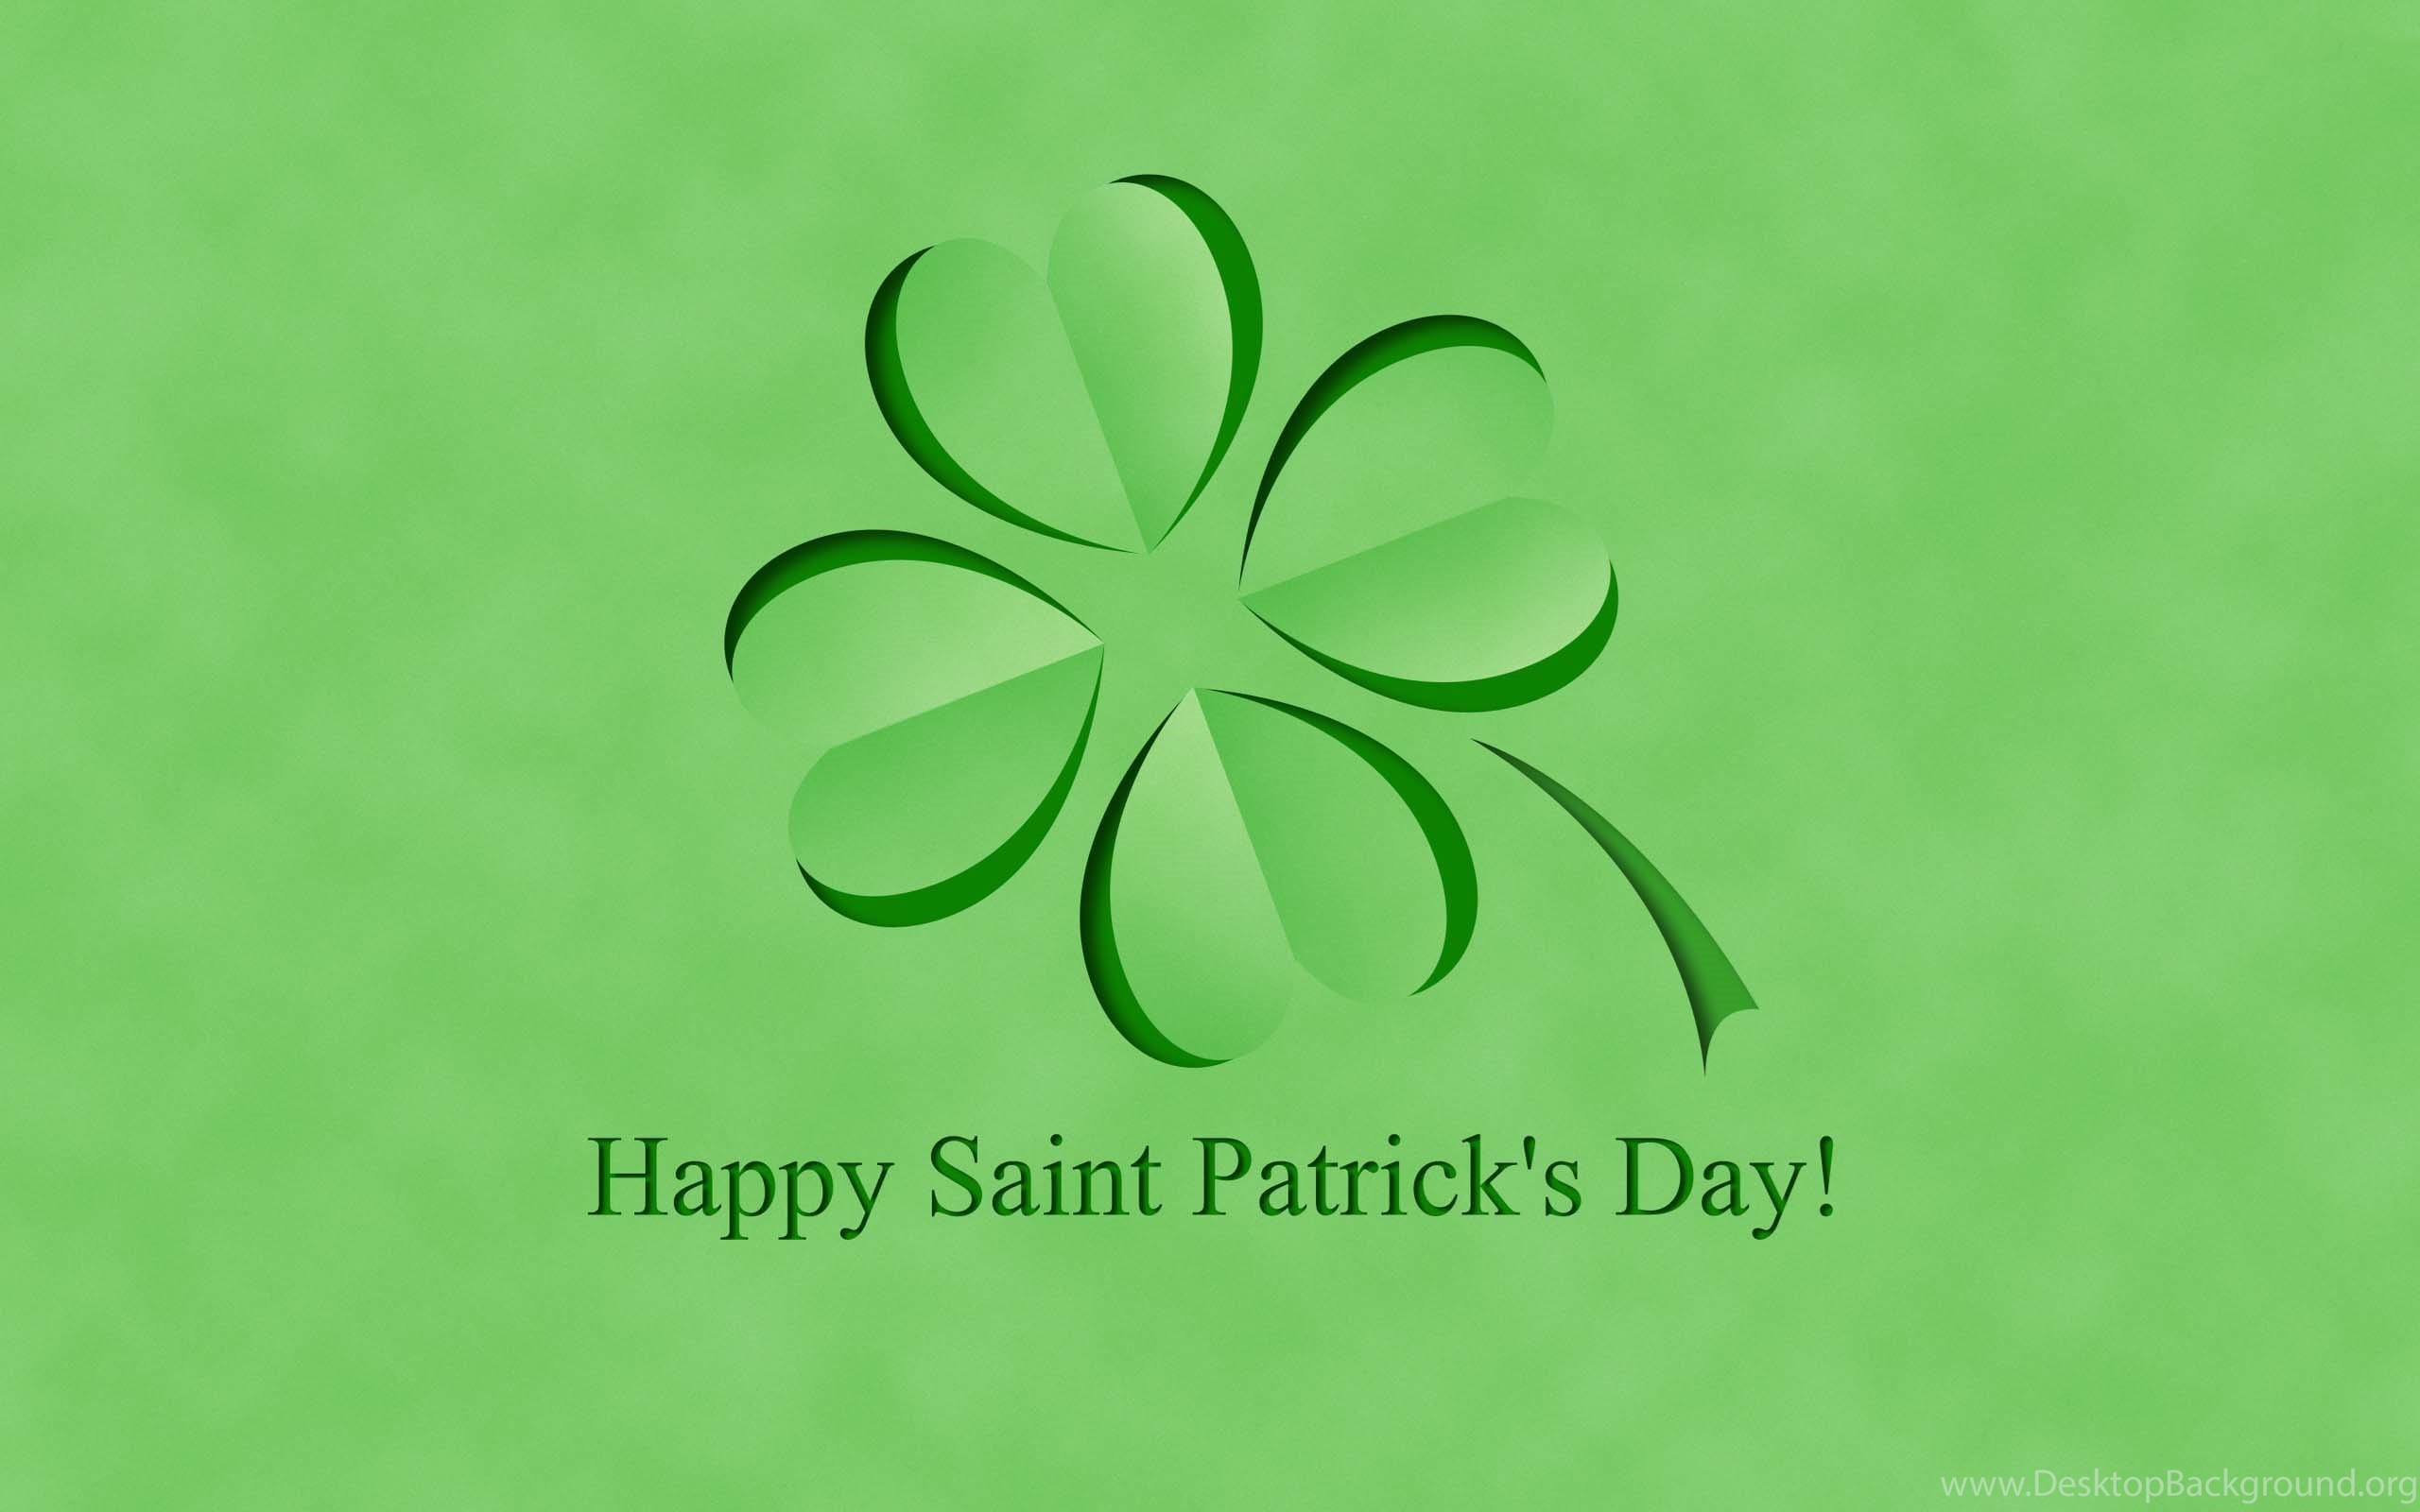 Free St Patricks Day Wallpapers Wallpapers Hd Wide Desktop Background